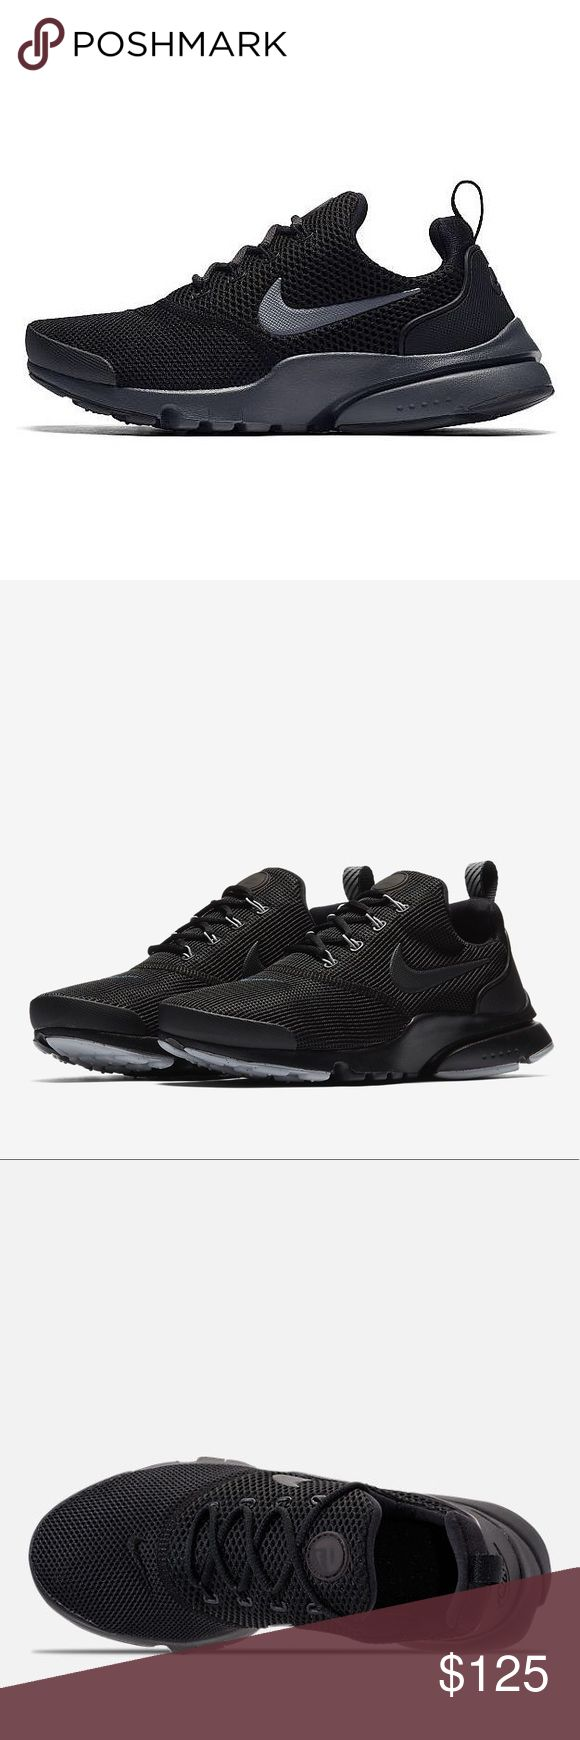 NIKE PRESTO FLY ALL BLACK WOMENS RUNNING SHOES Brand new without box. Shoes are a size 7 youth which converts to a women's size 8.5. I have added a sizing chart for your convenience. 100% authentic directly from Nike. Ships out same day or very next. Nike Shoes Sneakers